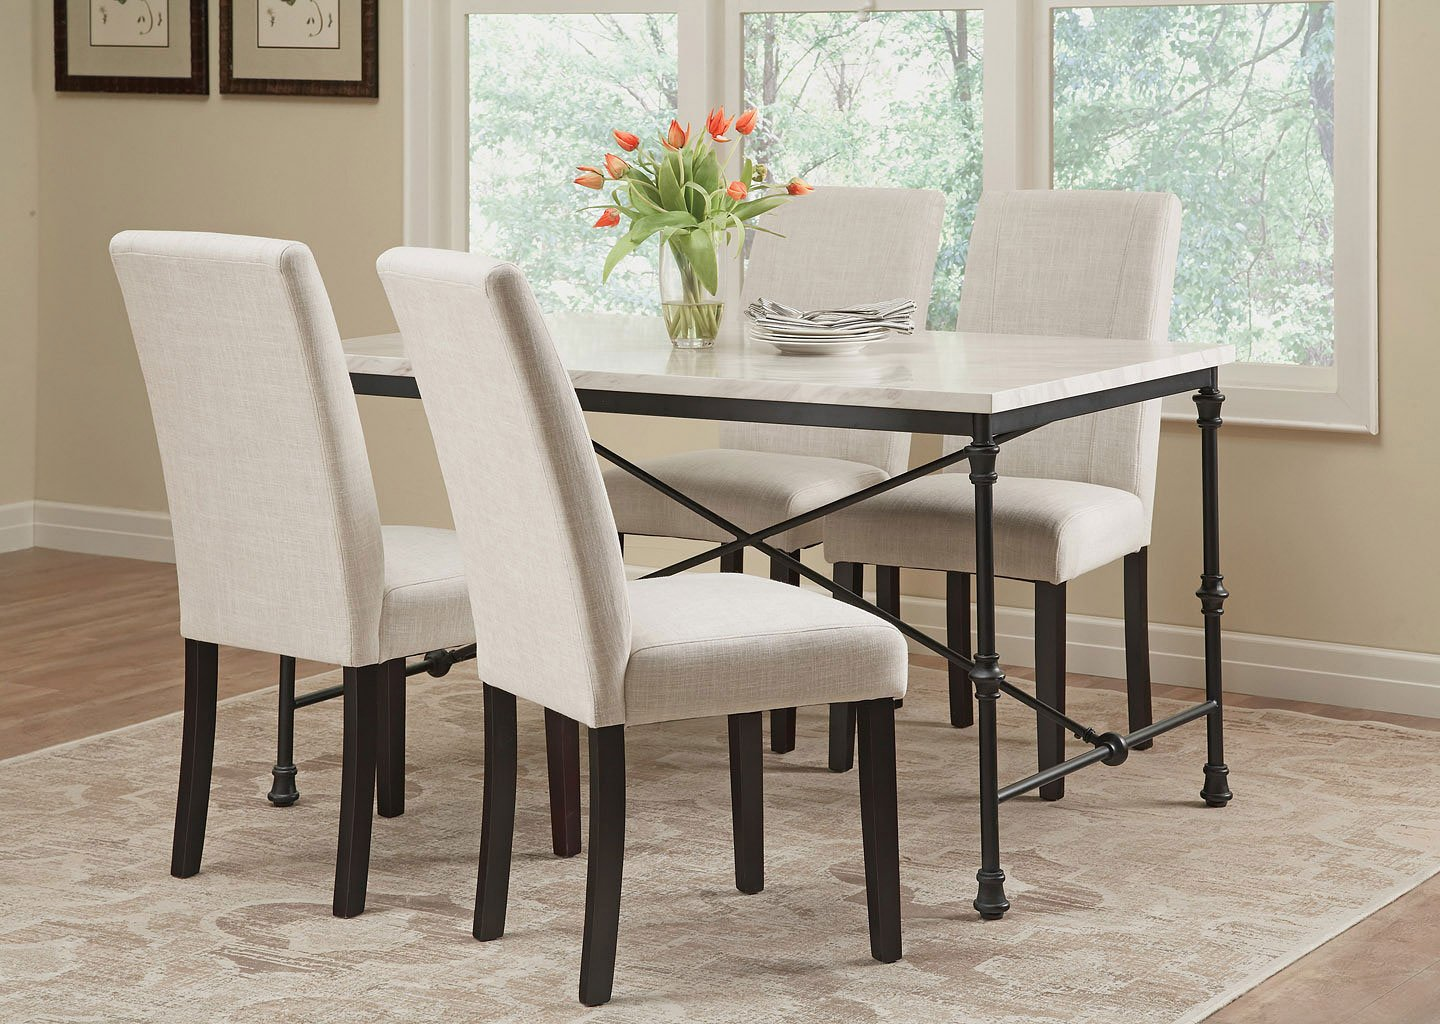 Nagel Dining Room Set W/ Commercial Grade Ivory Chairs